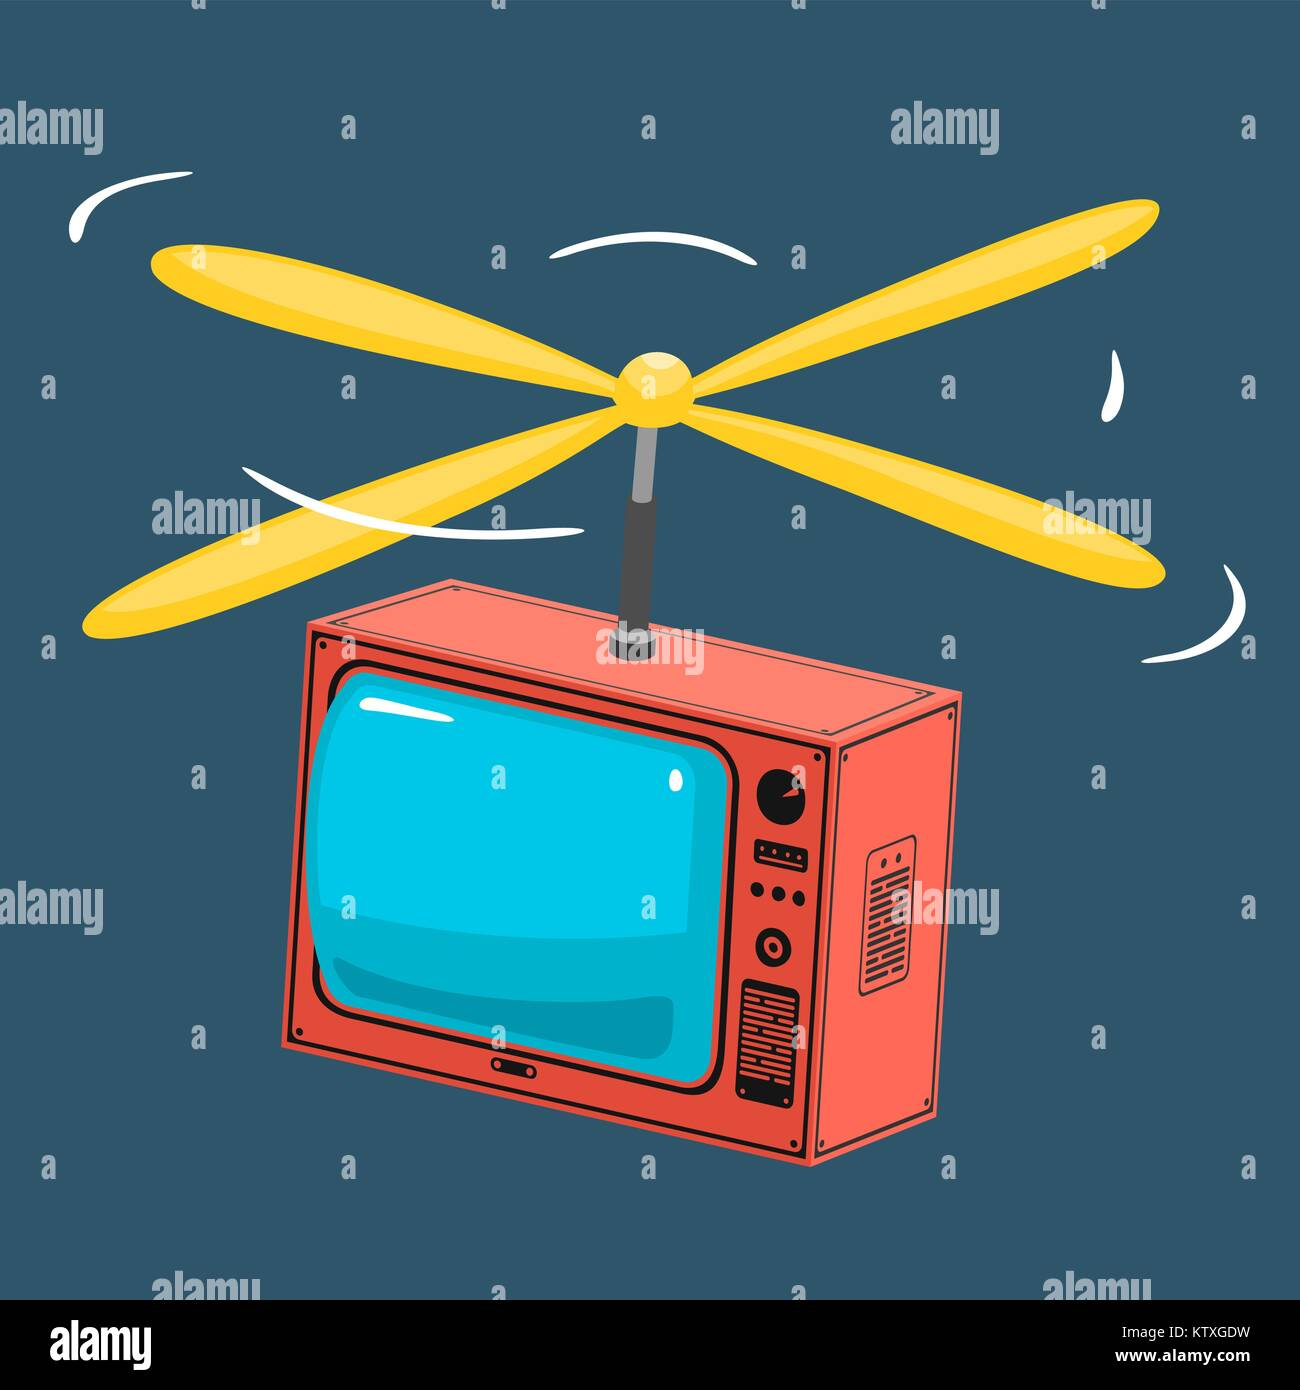 Illustration TV With Propeller - Stock Vector